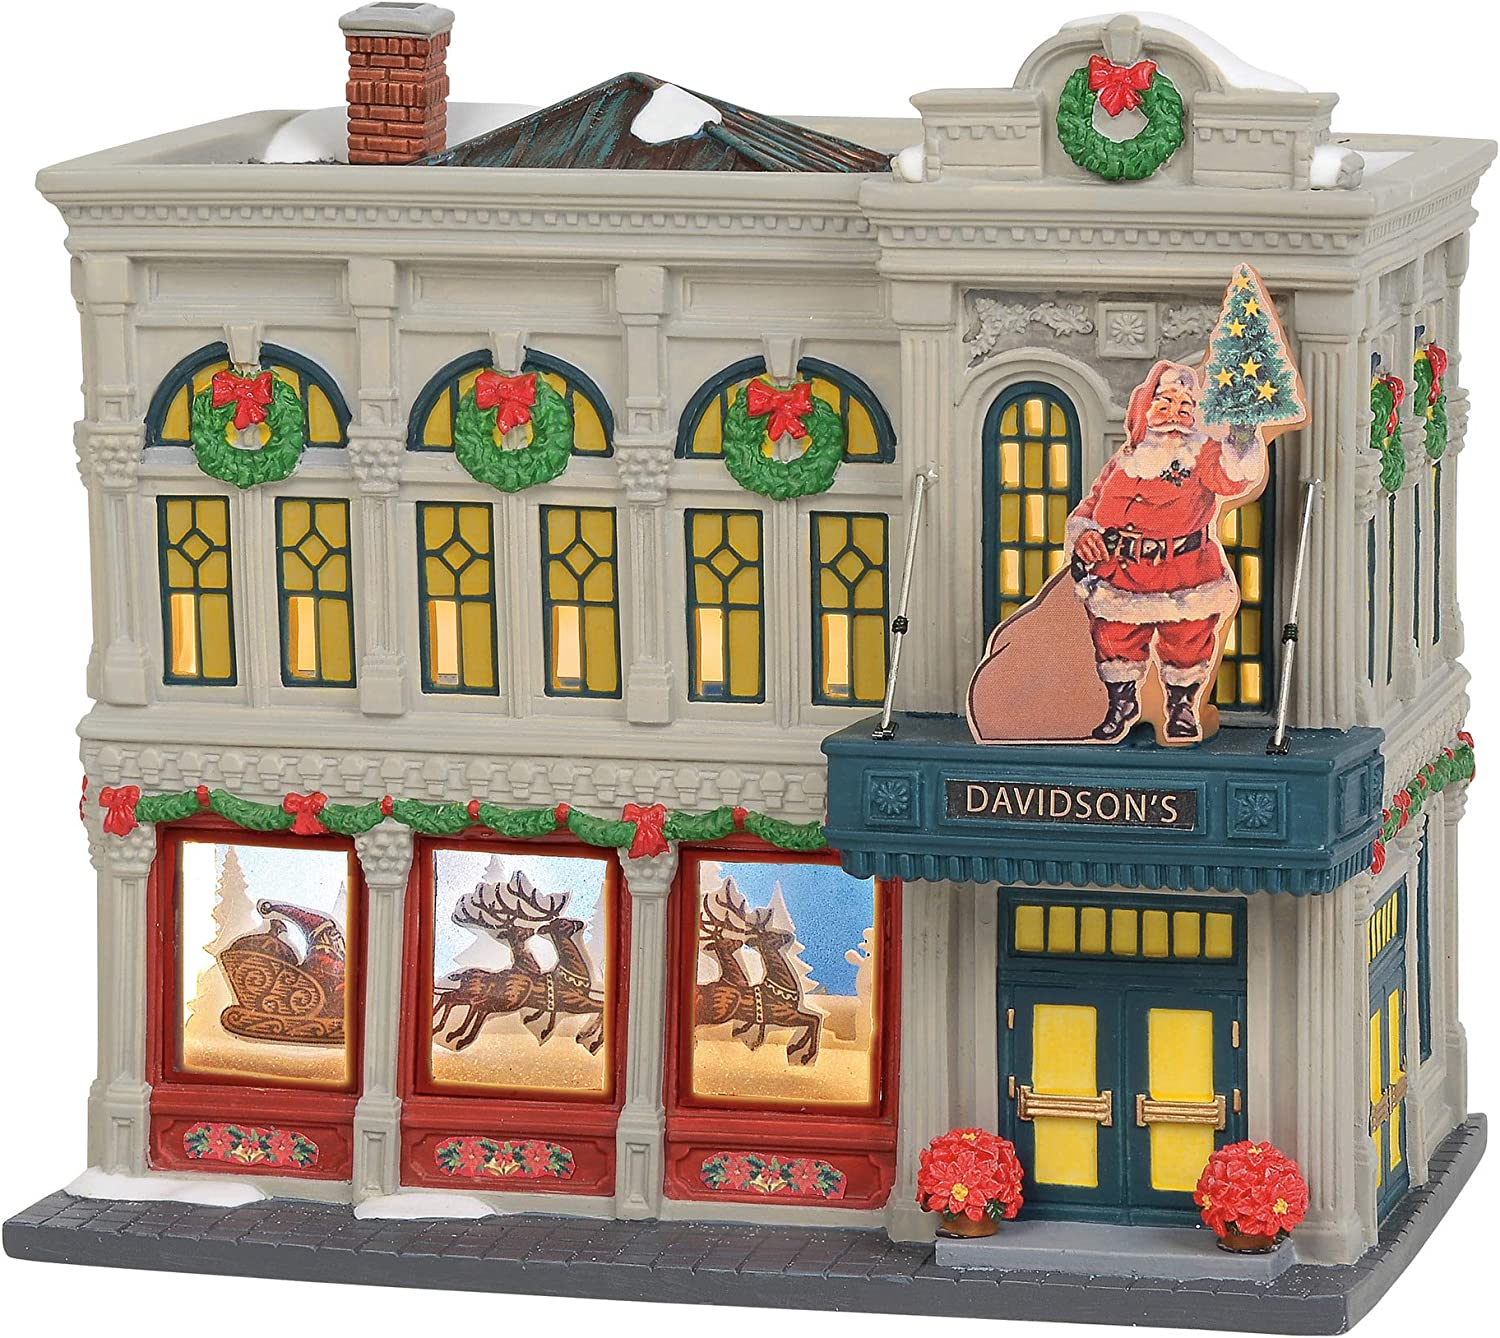 Department 56 Christmas in The City Village Davidson's Department Store Lit Building, 7.48 Inch, Multicolor